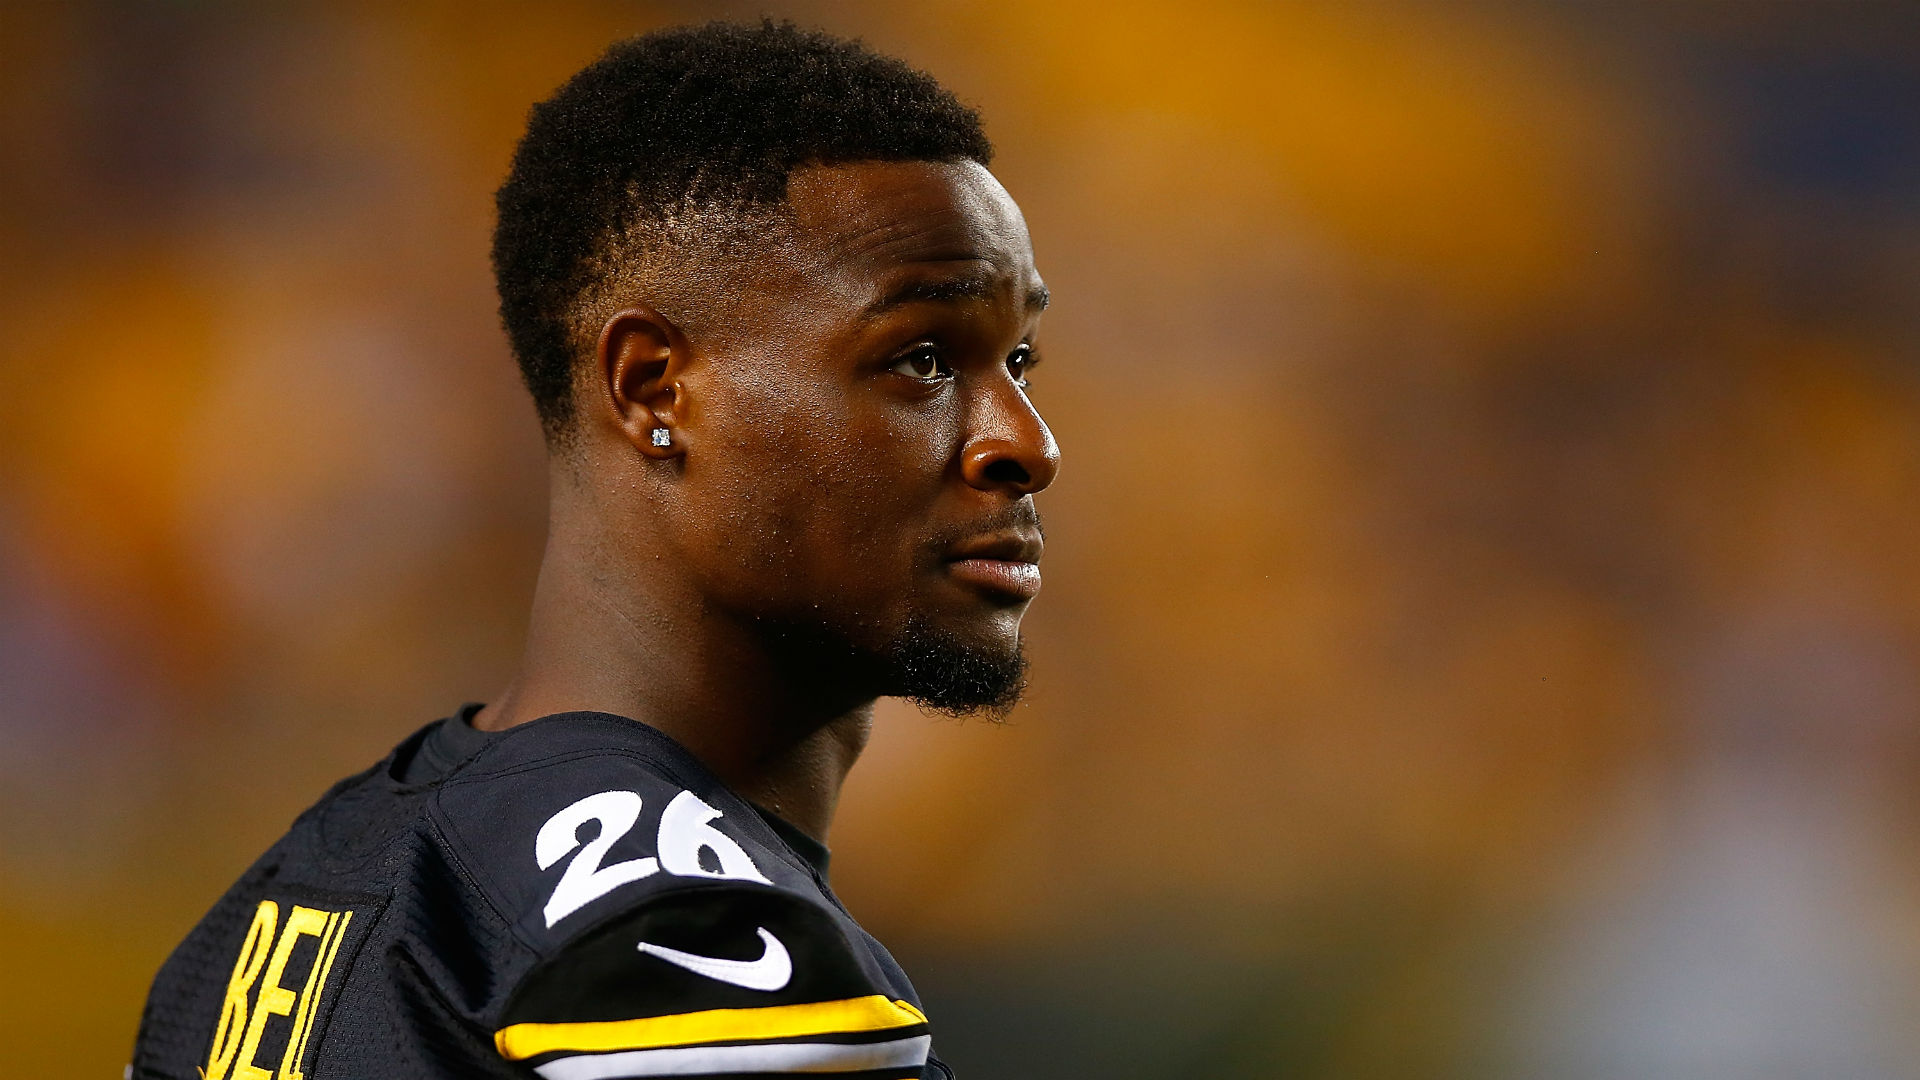 Steelers offered Le'Veon Bell more than $12 million per year